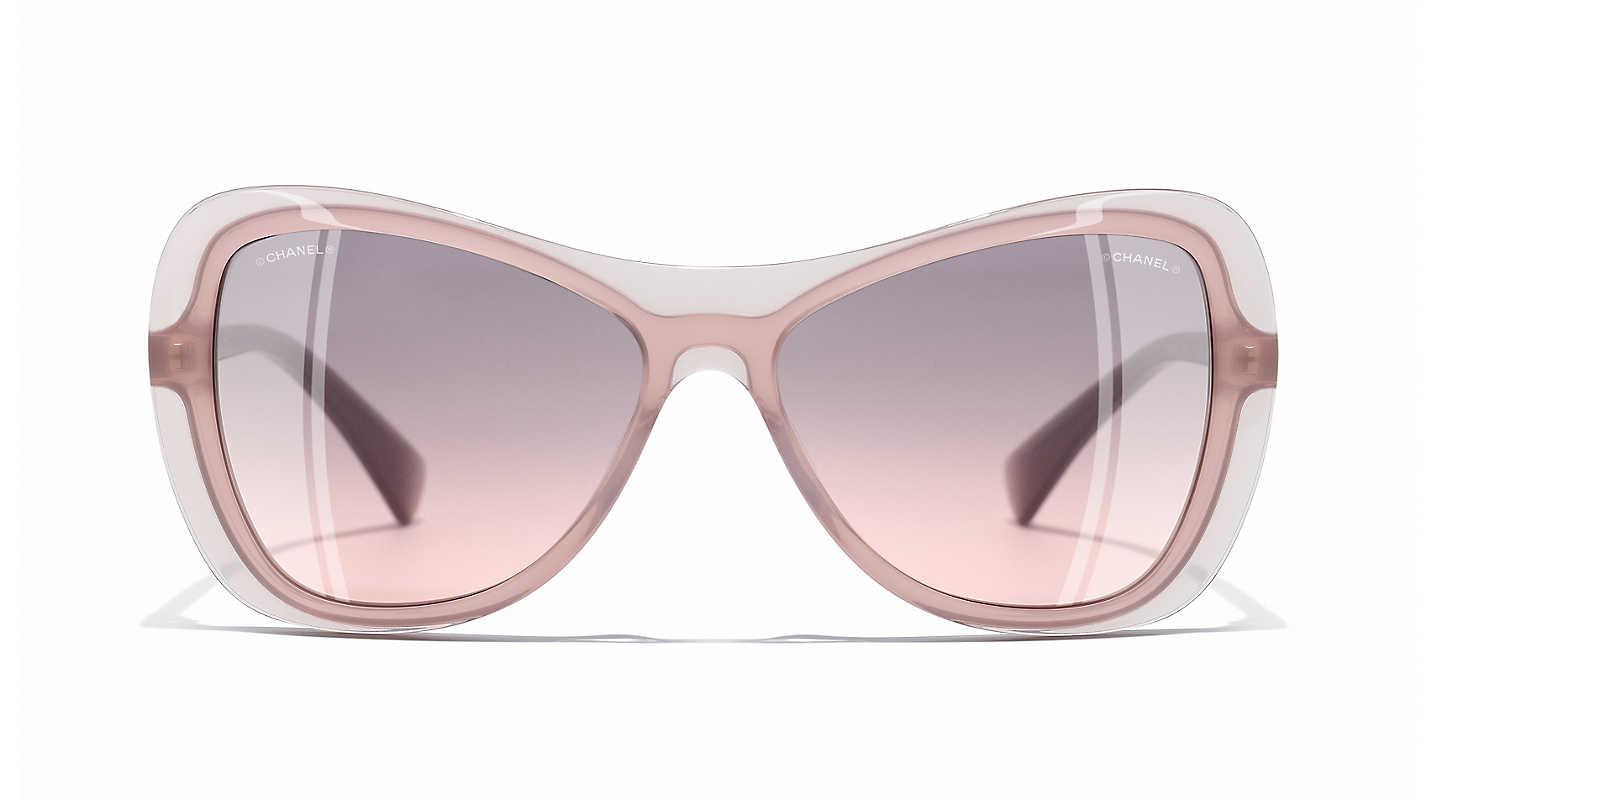 3c33a24c3fb9 Chanel Butterfly Sunglasses in Pink - Lyst